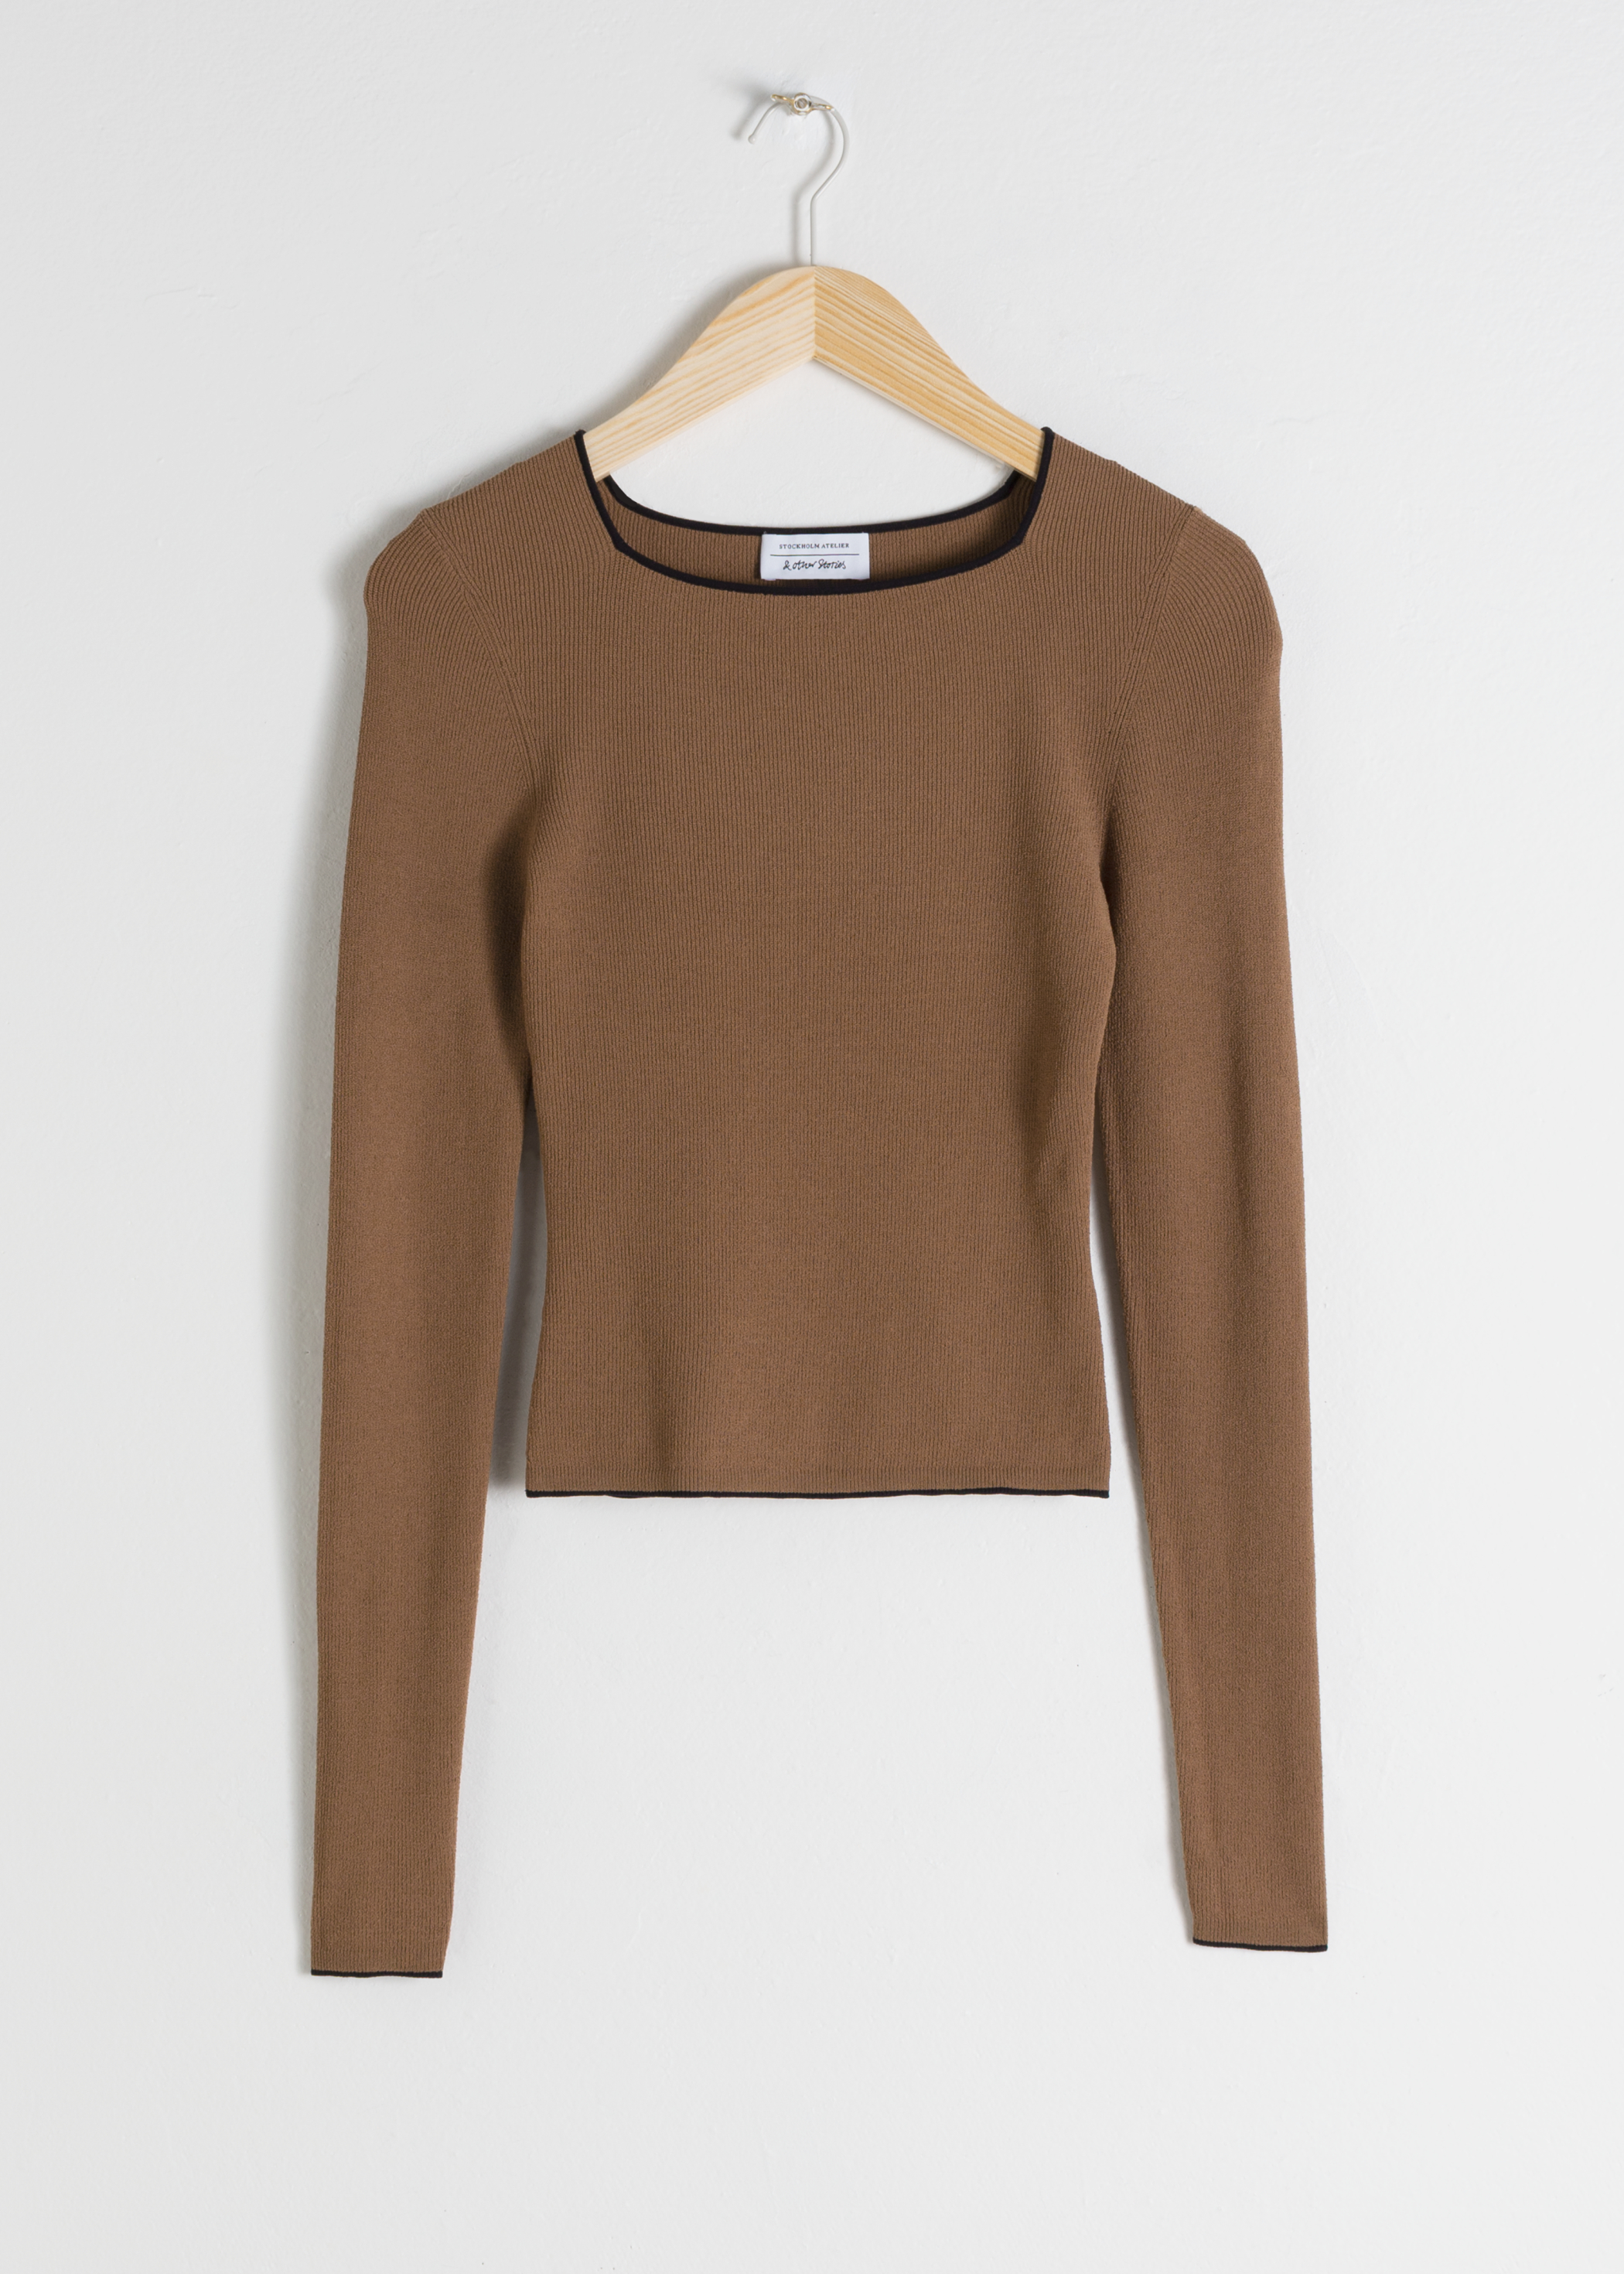 Fitted Square Neck Micro Knit Top